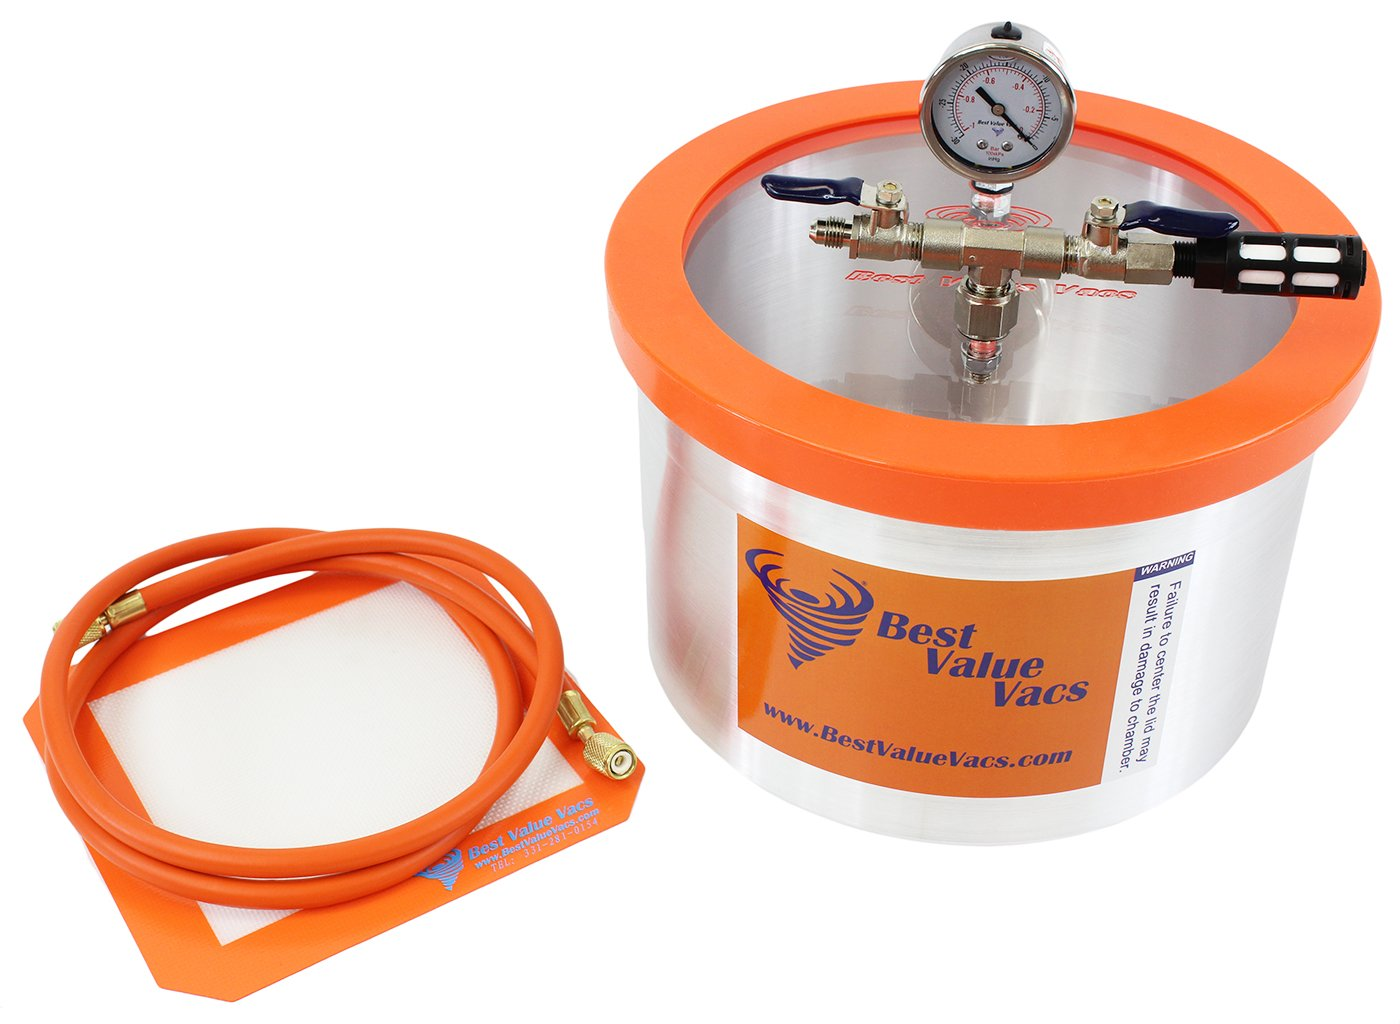 Vacuum Chamber by Best Value Vacs- 2 Gallon Vacuum & Degassing Chamber 71UeH0uks2L._SL1400_